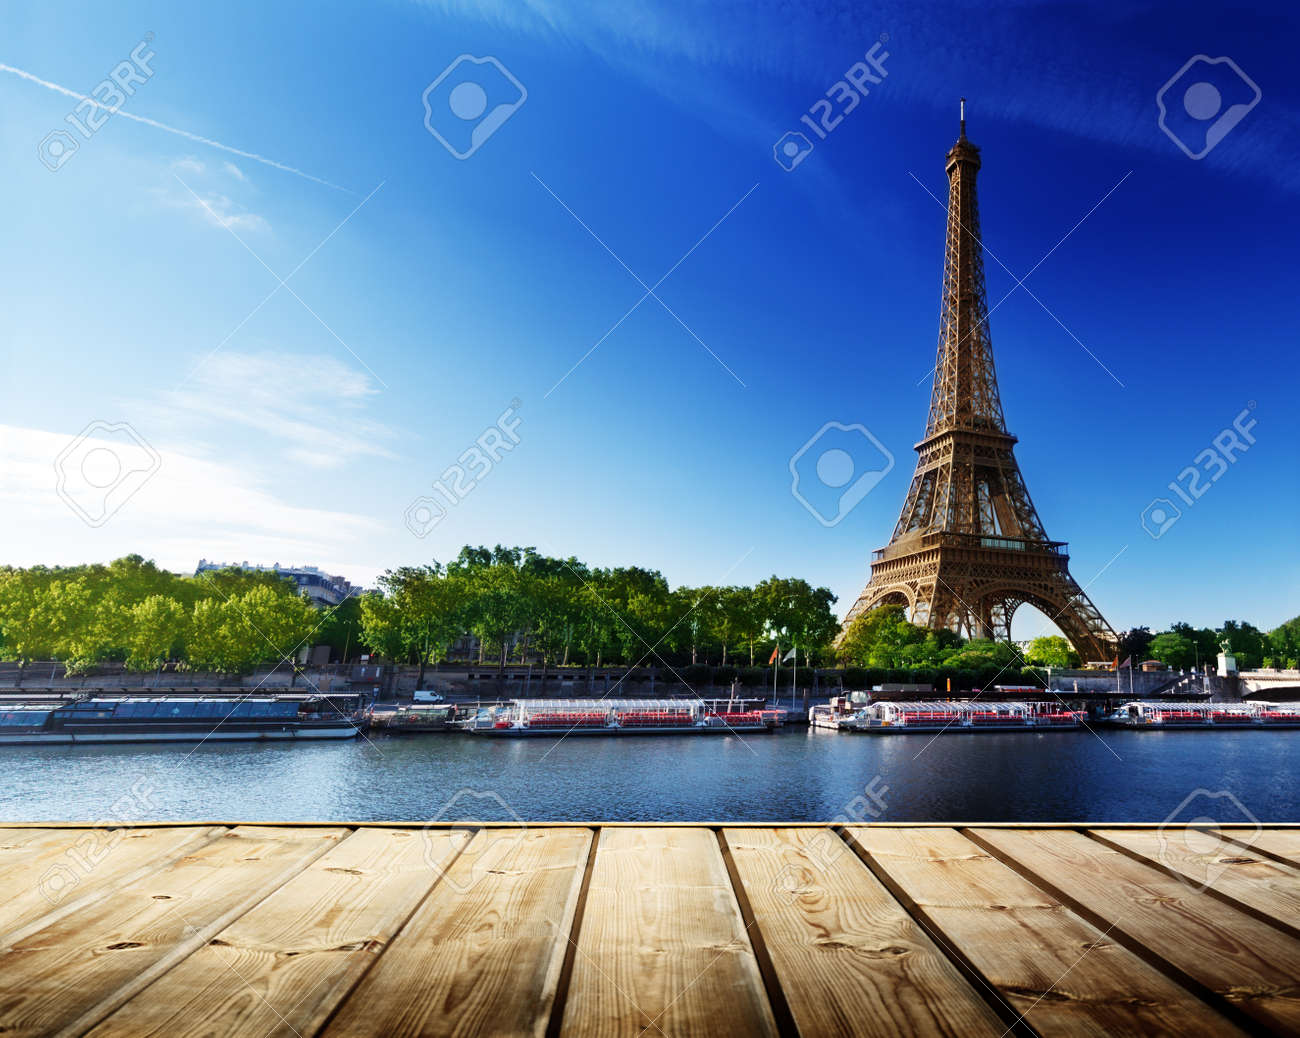 background with wooden deck table and Eiffel tower in Paris - 21057785